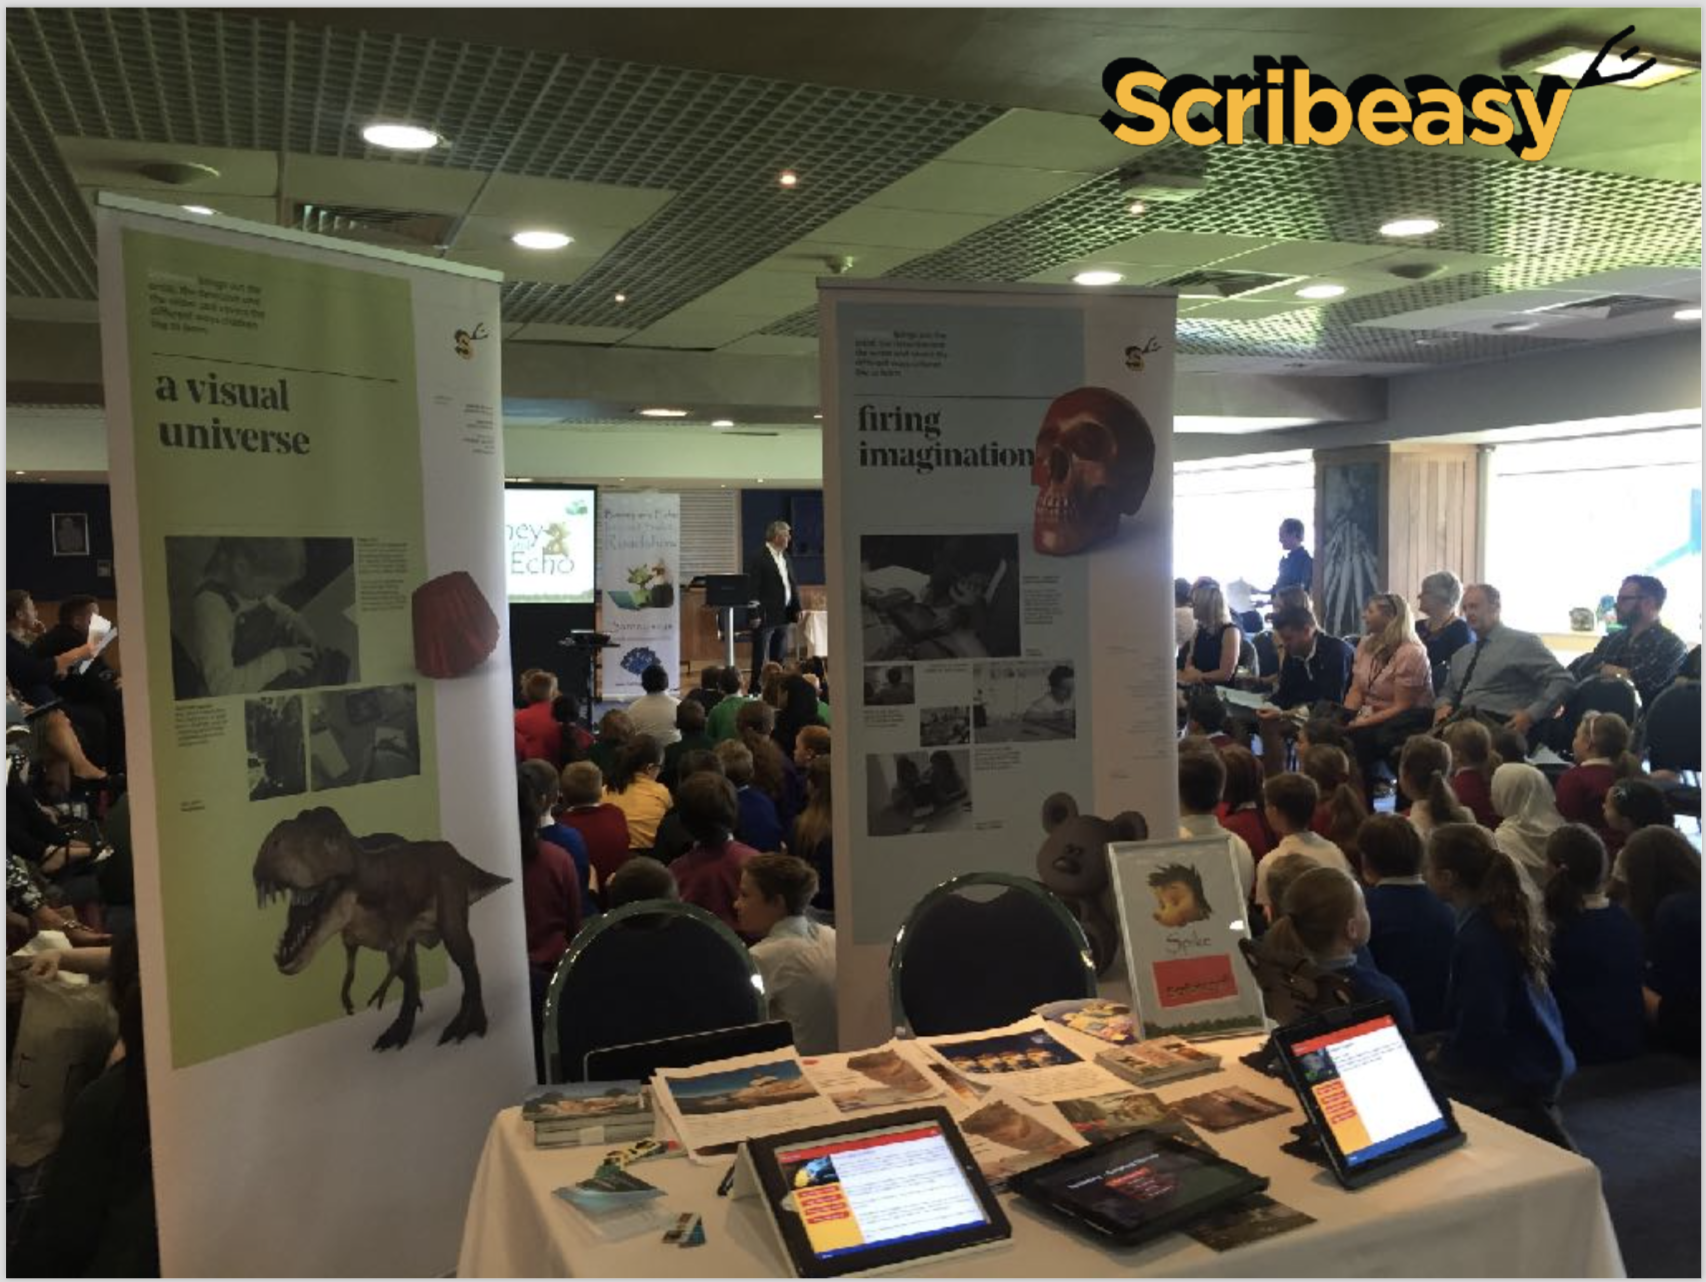 We have started the Scribeasy road show…